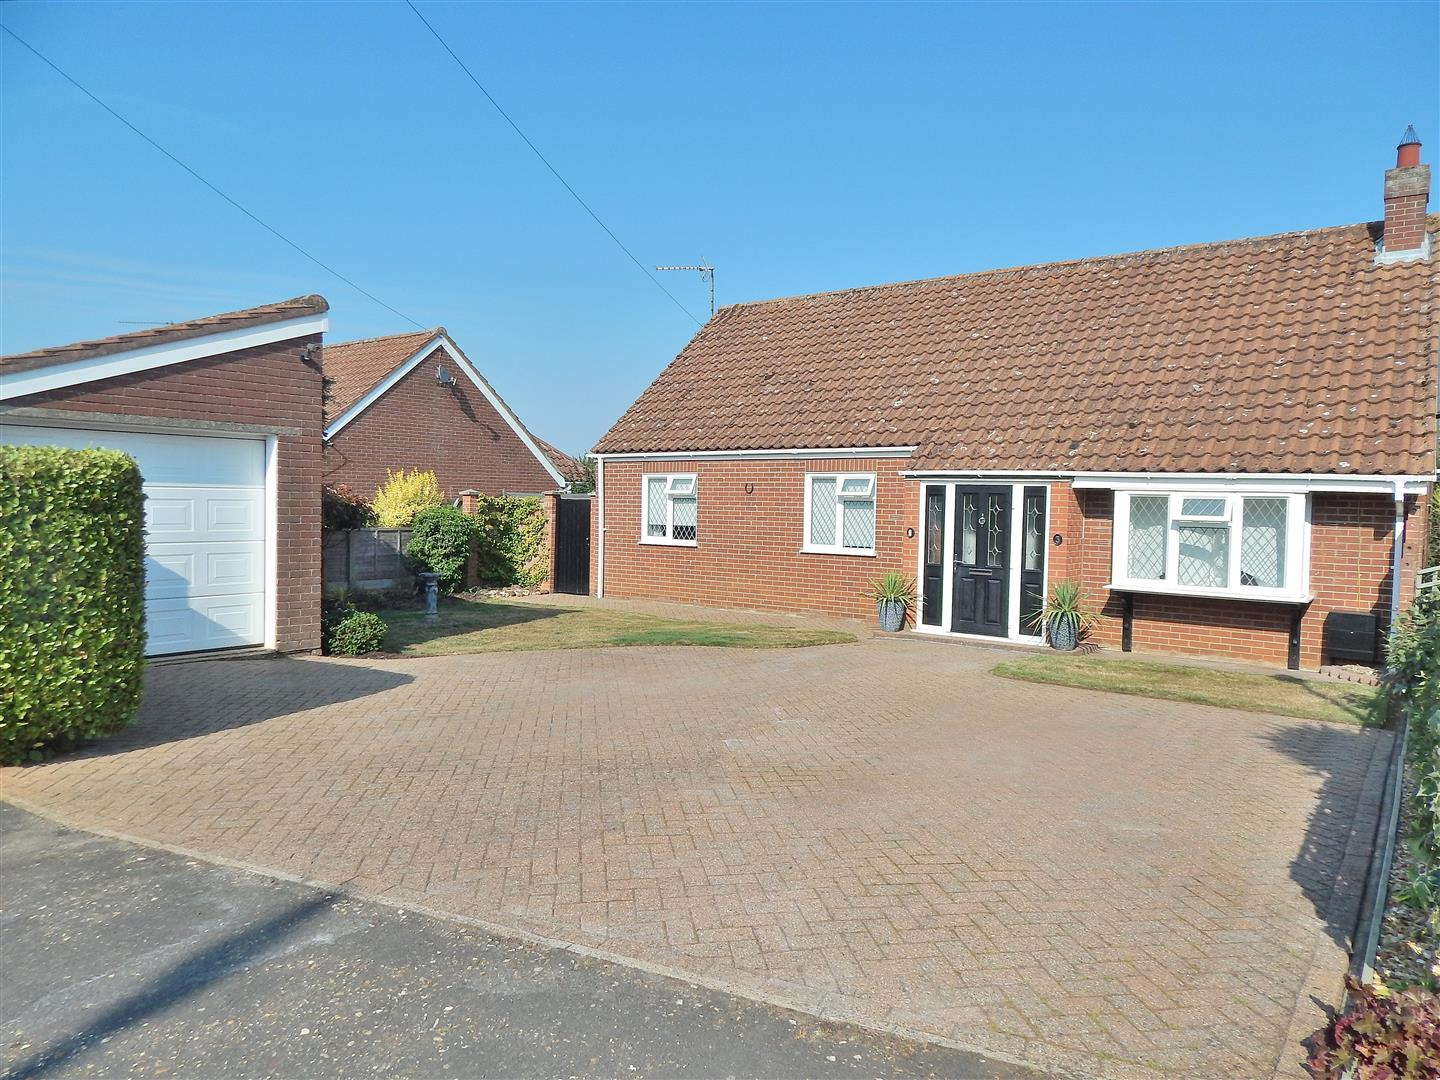 3 bed detached bungalow for sale in King's Lynn, PE31 6YE 0